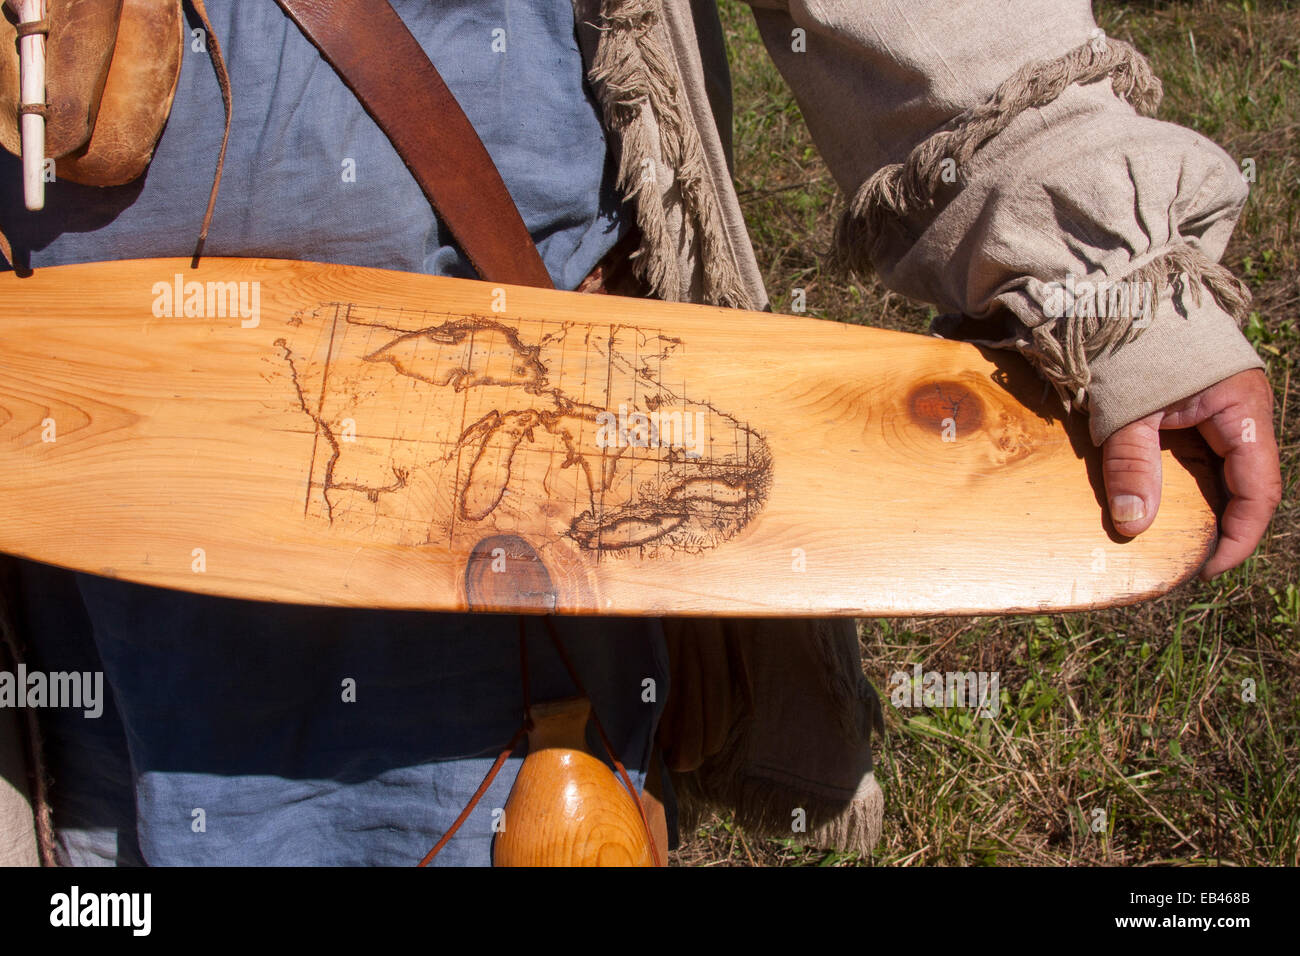 French Voyageur Explorer holding a canoe paddle with an old map of the Great Lakes burned onto it - Stock Image